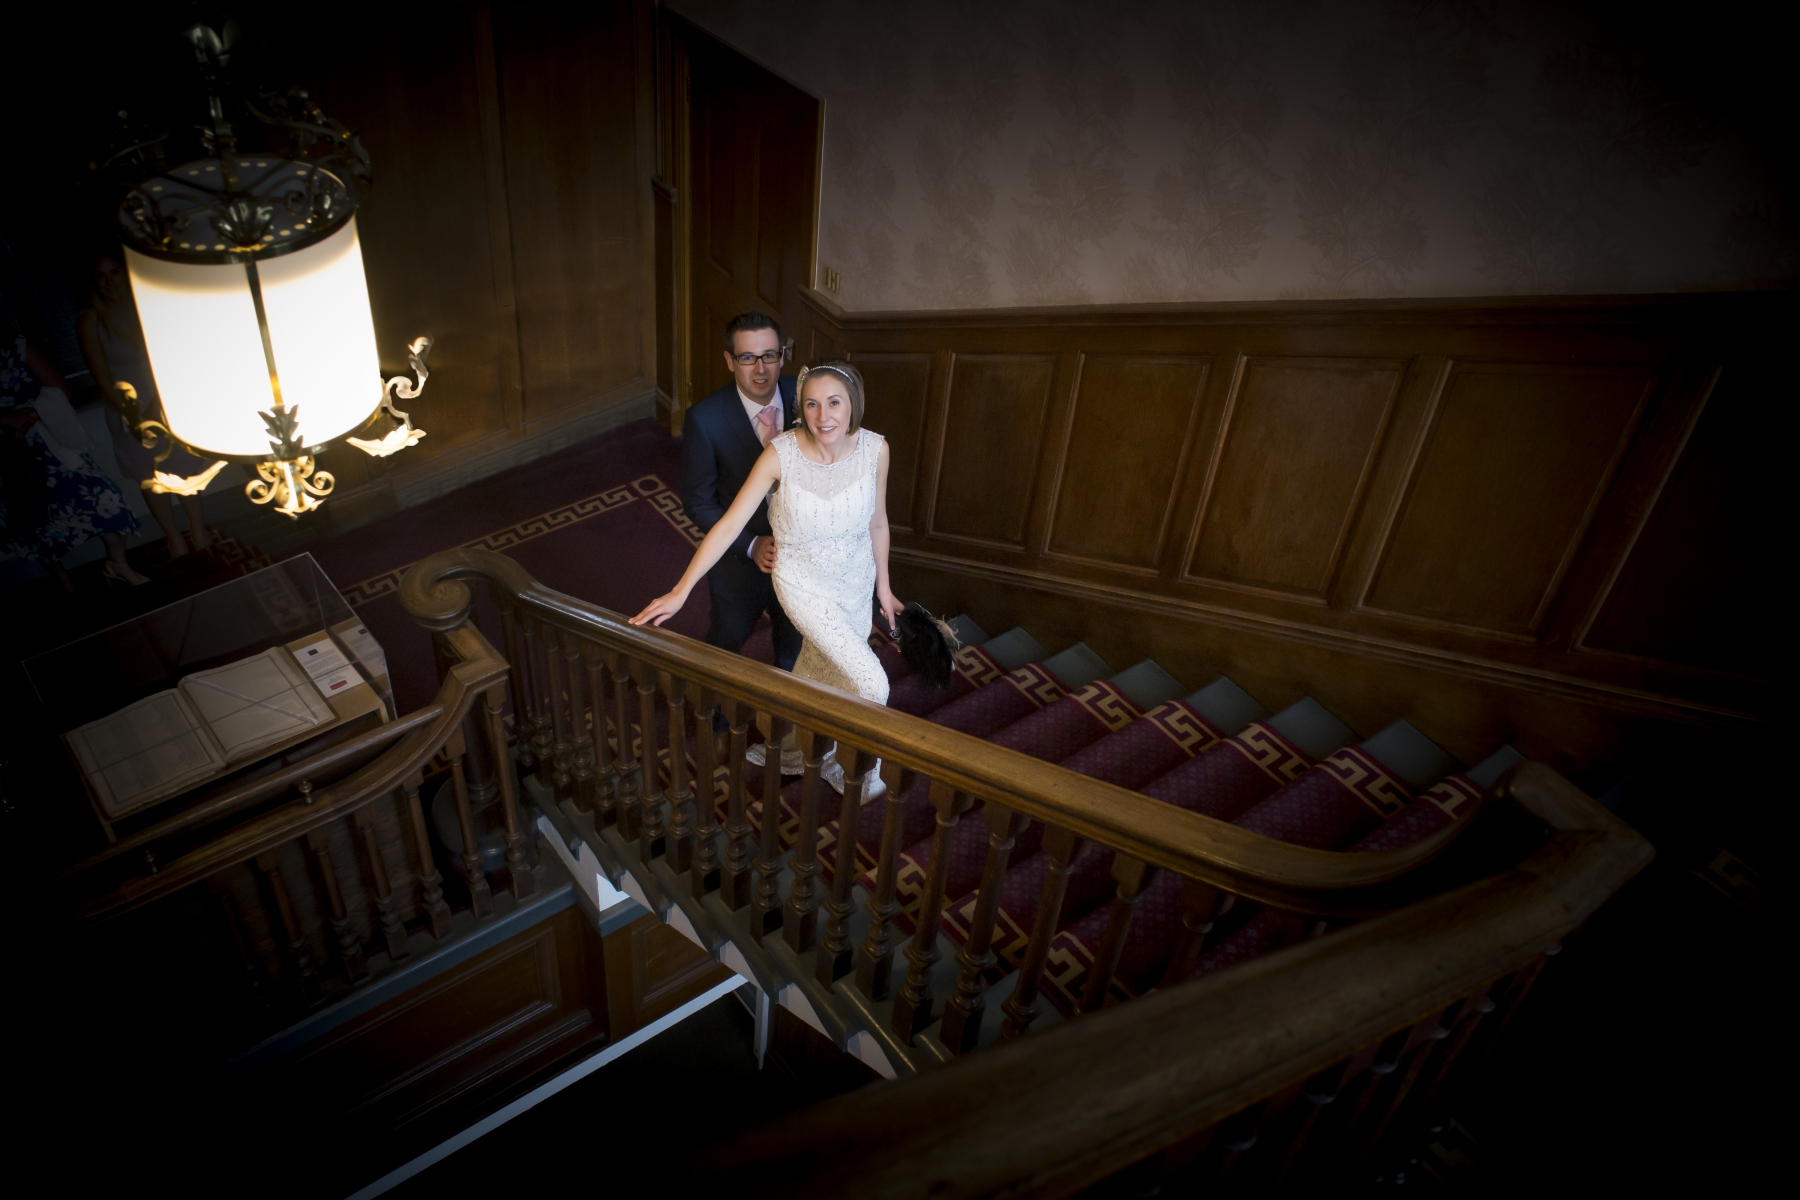 Edinburgh City Chambers Wedding Photography-19